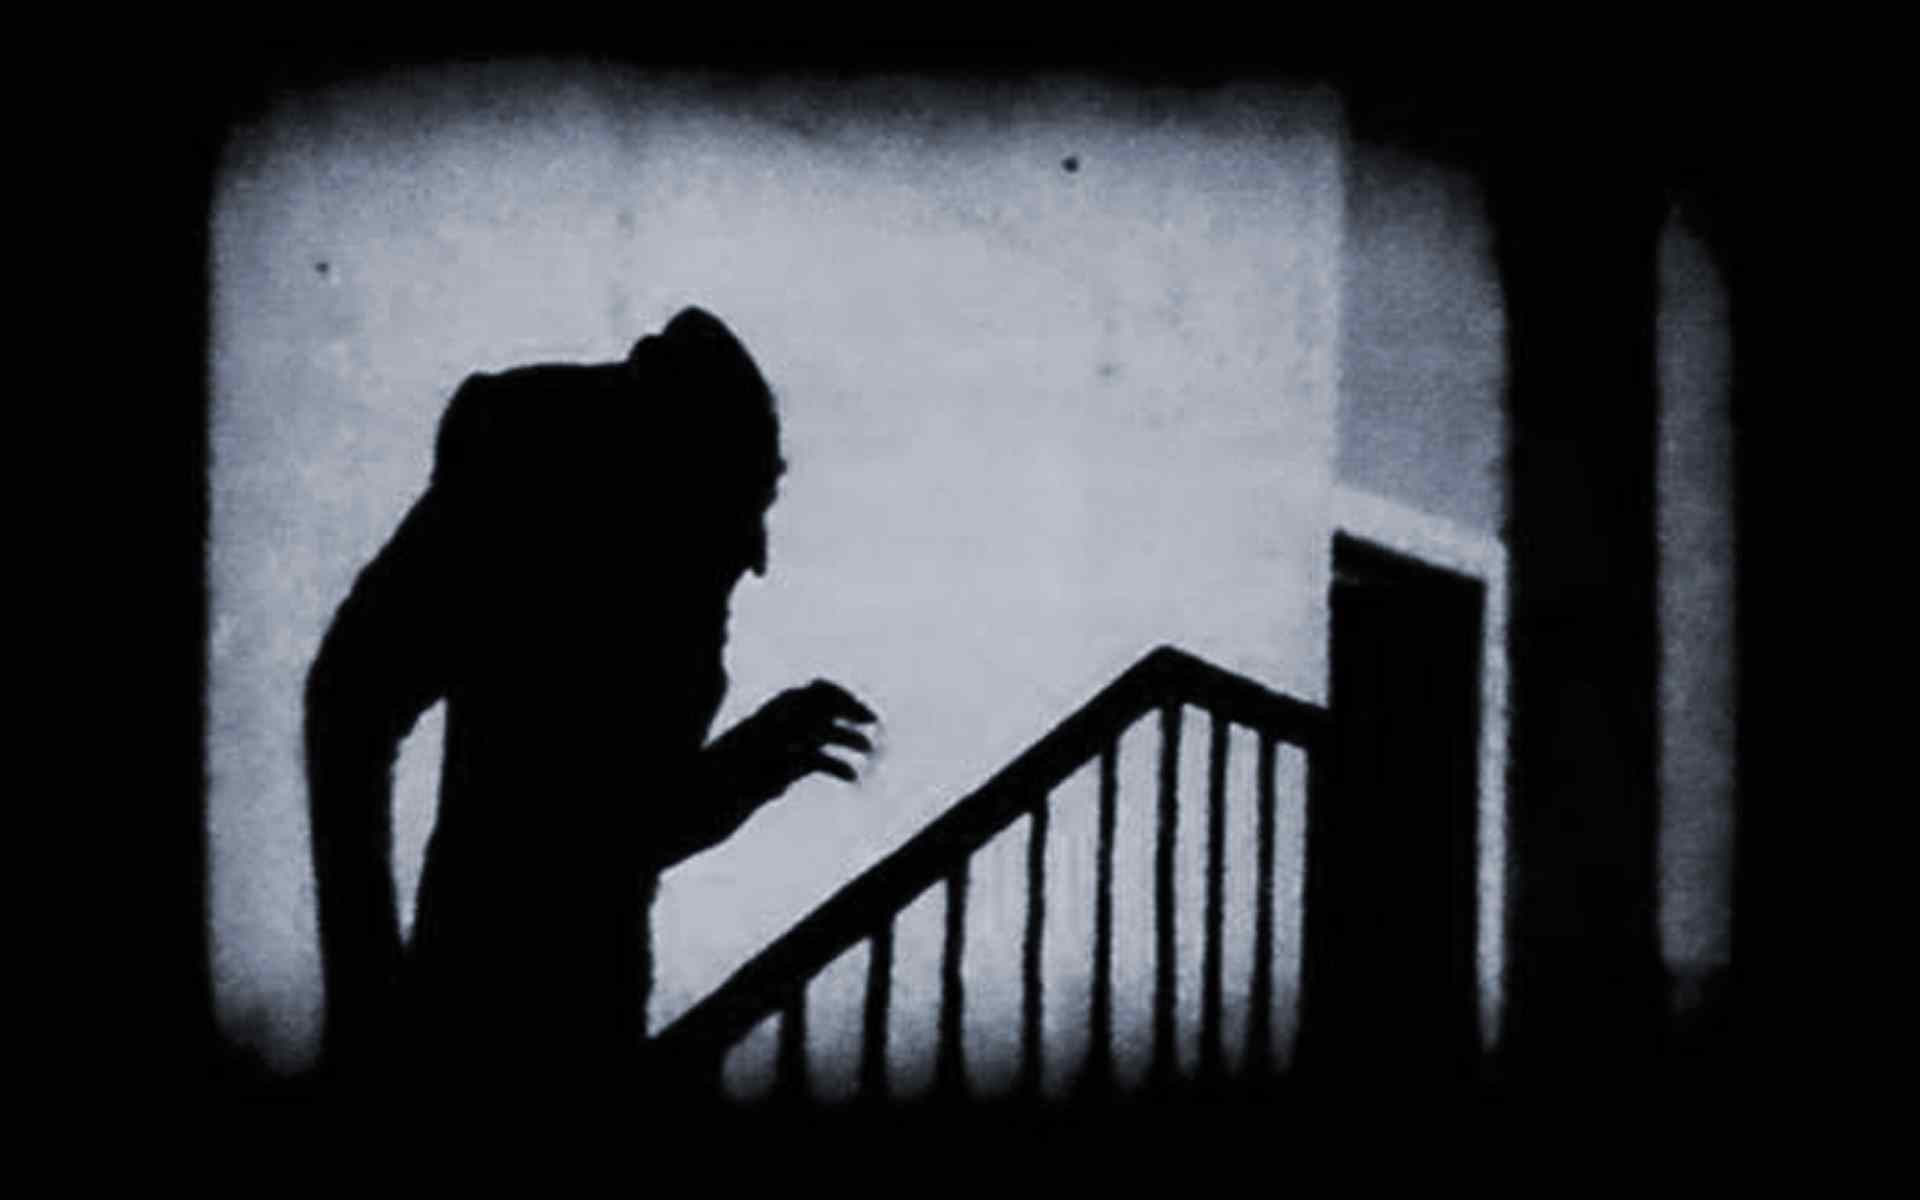 Nosferatu starring Max Shreck and directed by F.W. Murnau.